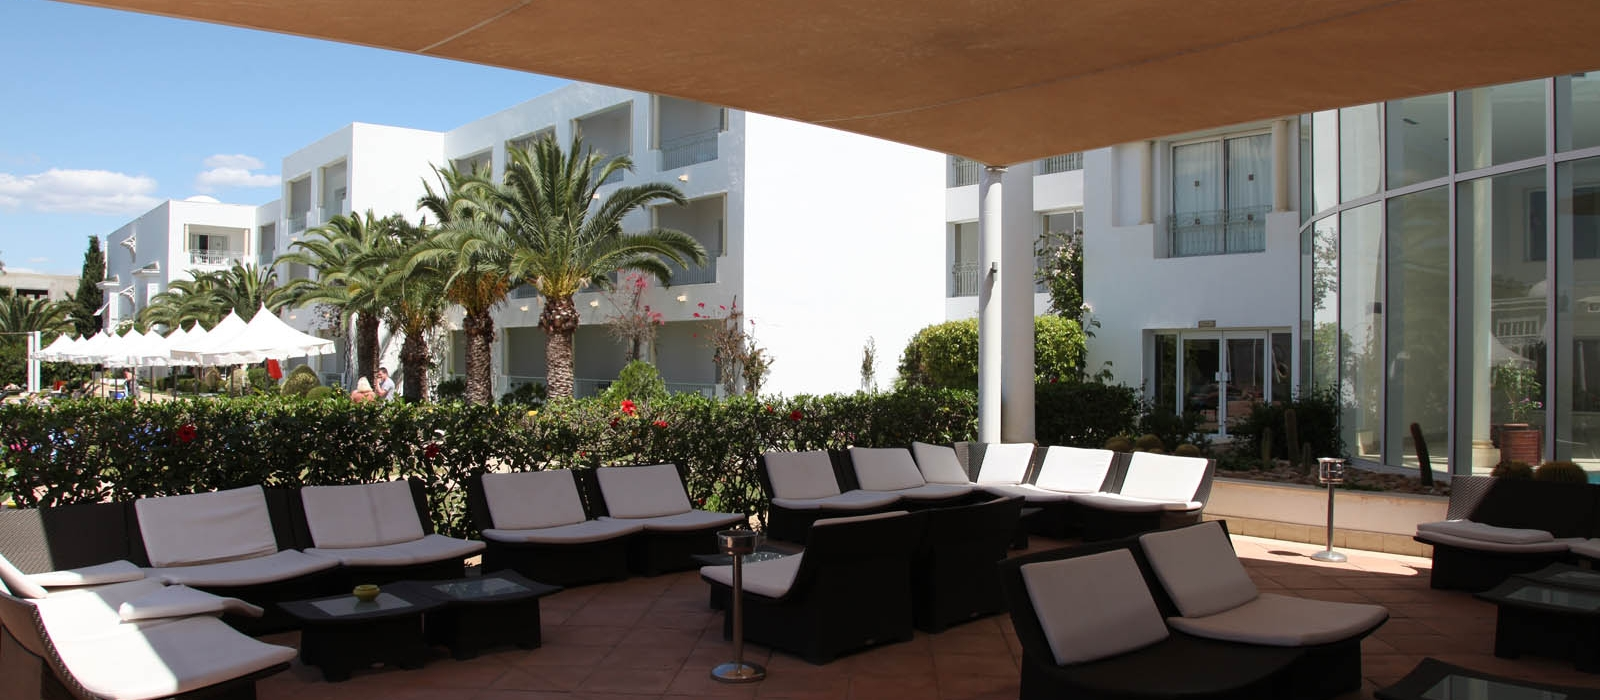 Services Hotel Hammamet Flora Park - Vincci Hotels - Conference Rooms